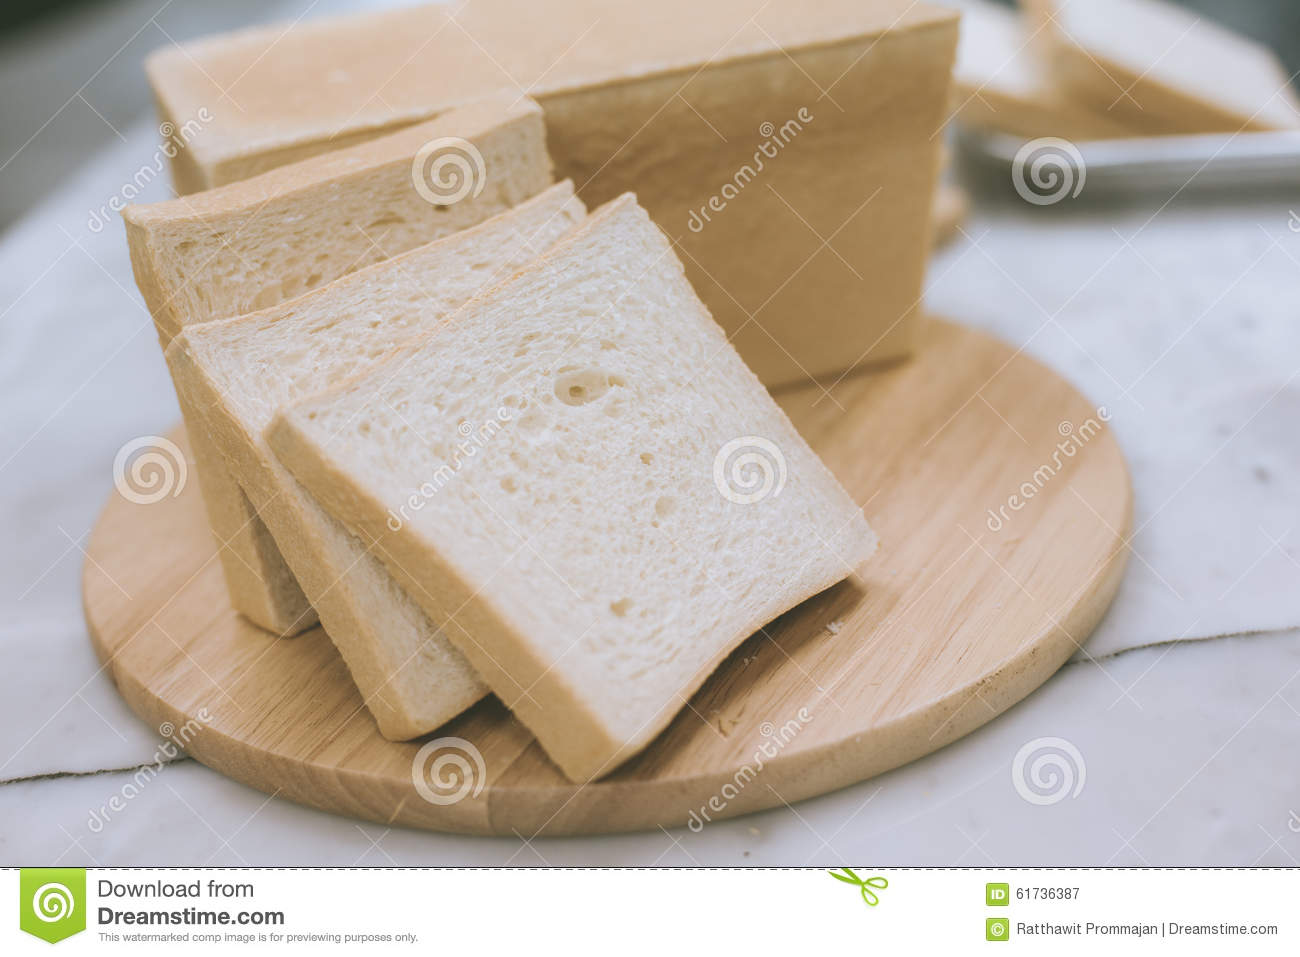 how to cut a loaf of bread